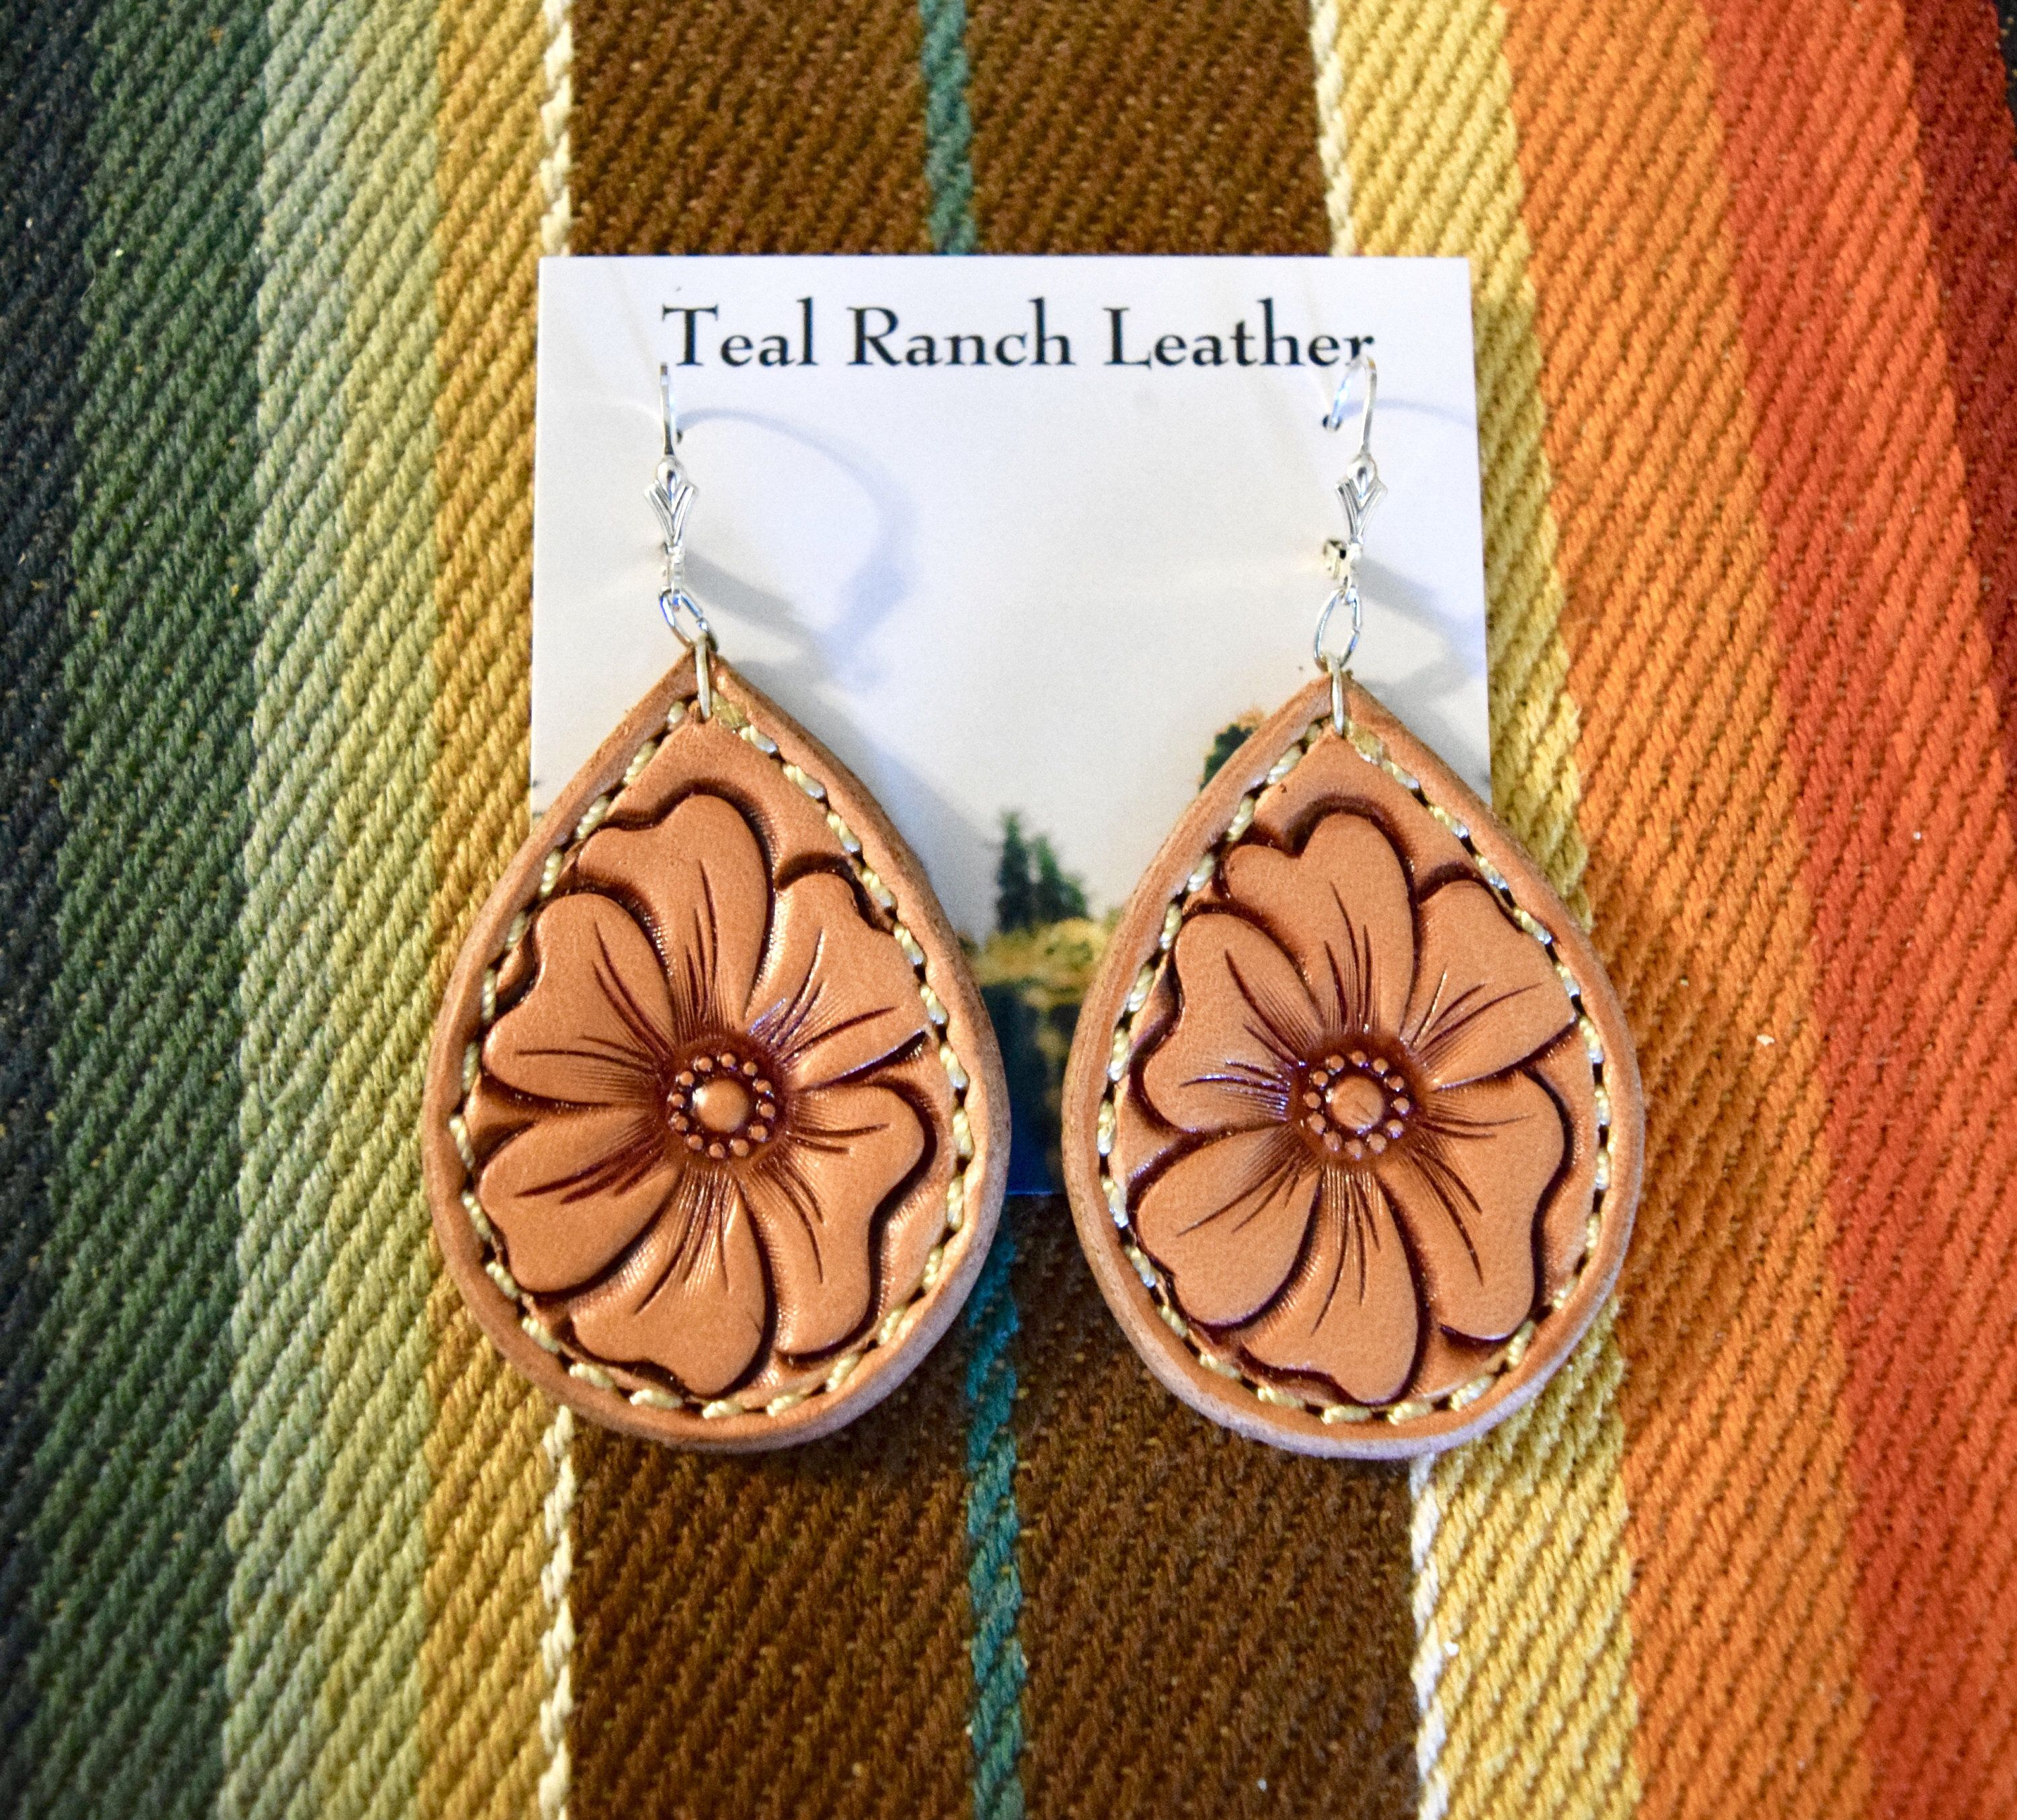 Personalized Leather Earrings Leather Jewels Orange and Red Leather Flower Earrings